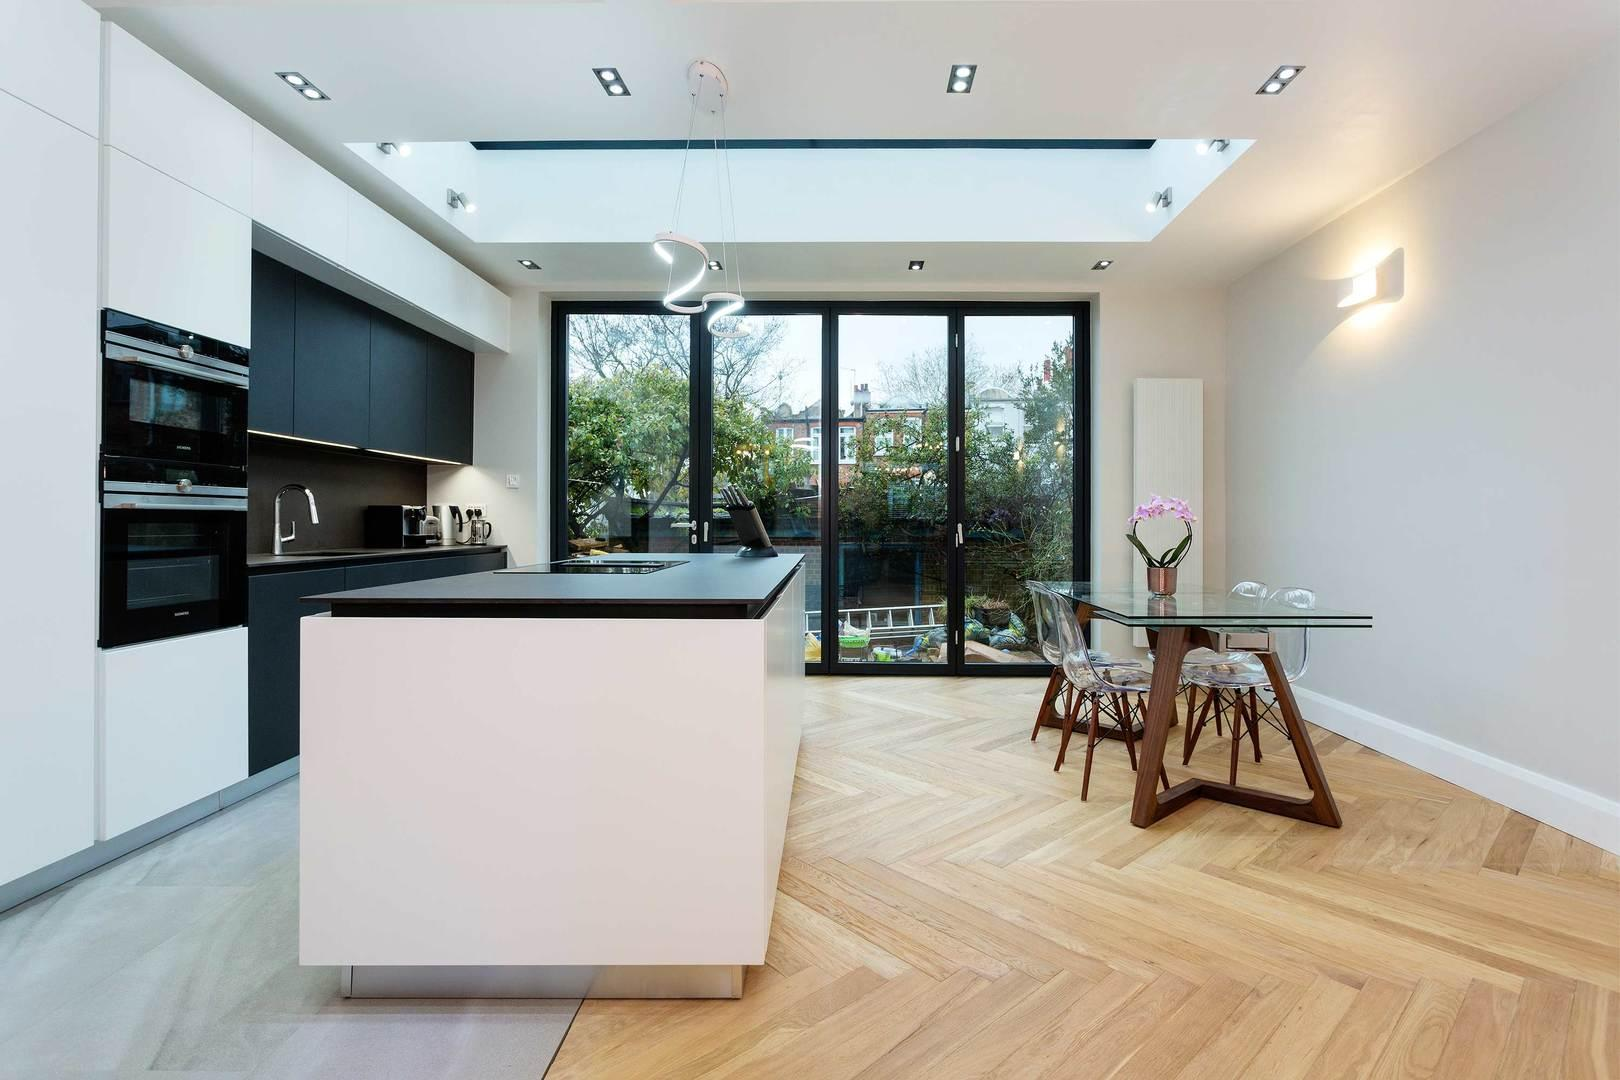 Property Image 1 - Sleek and Bright East Finchley House with Patio Garden